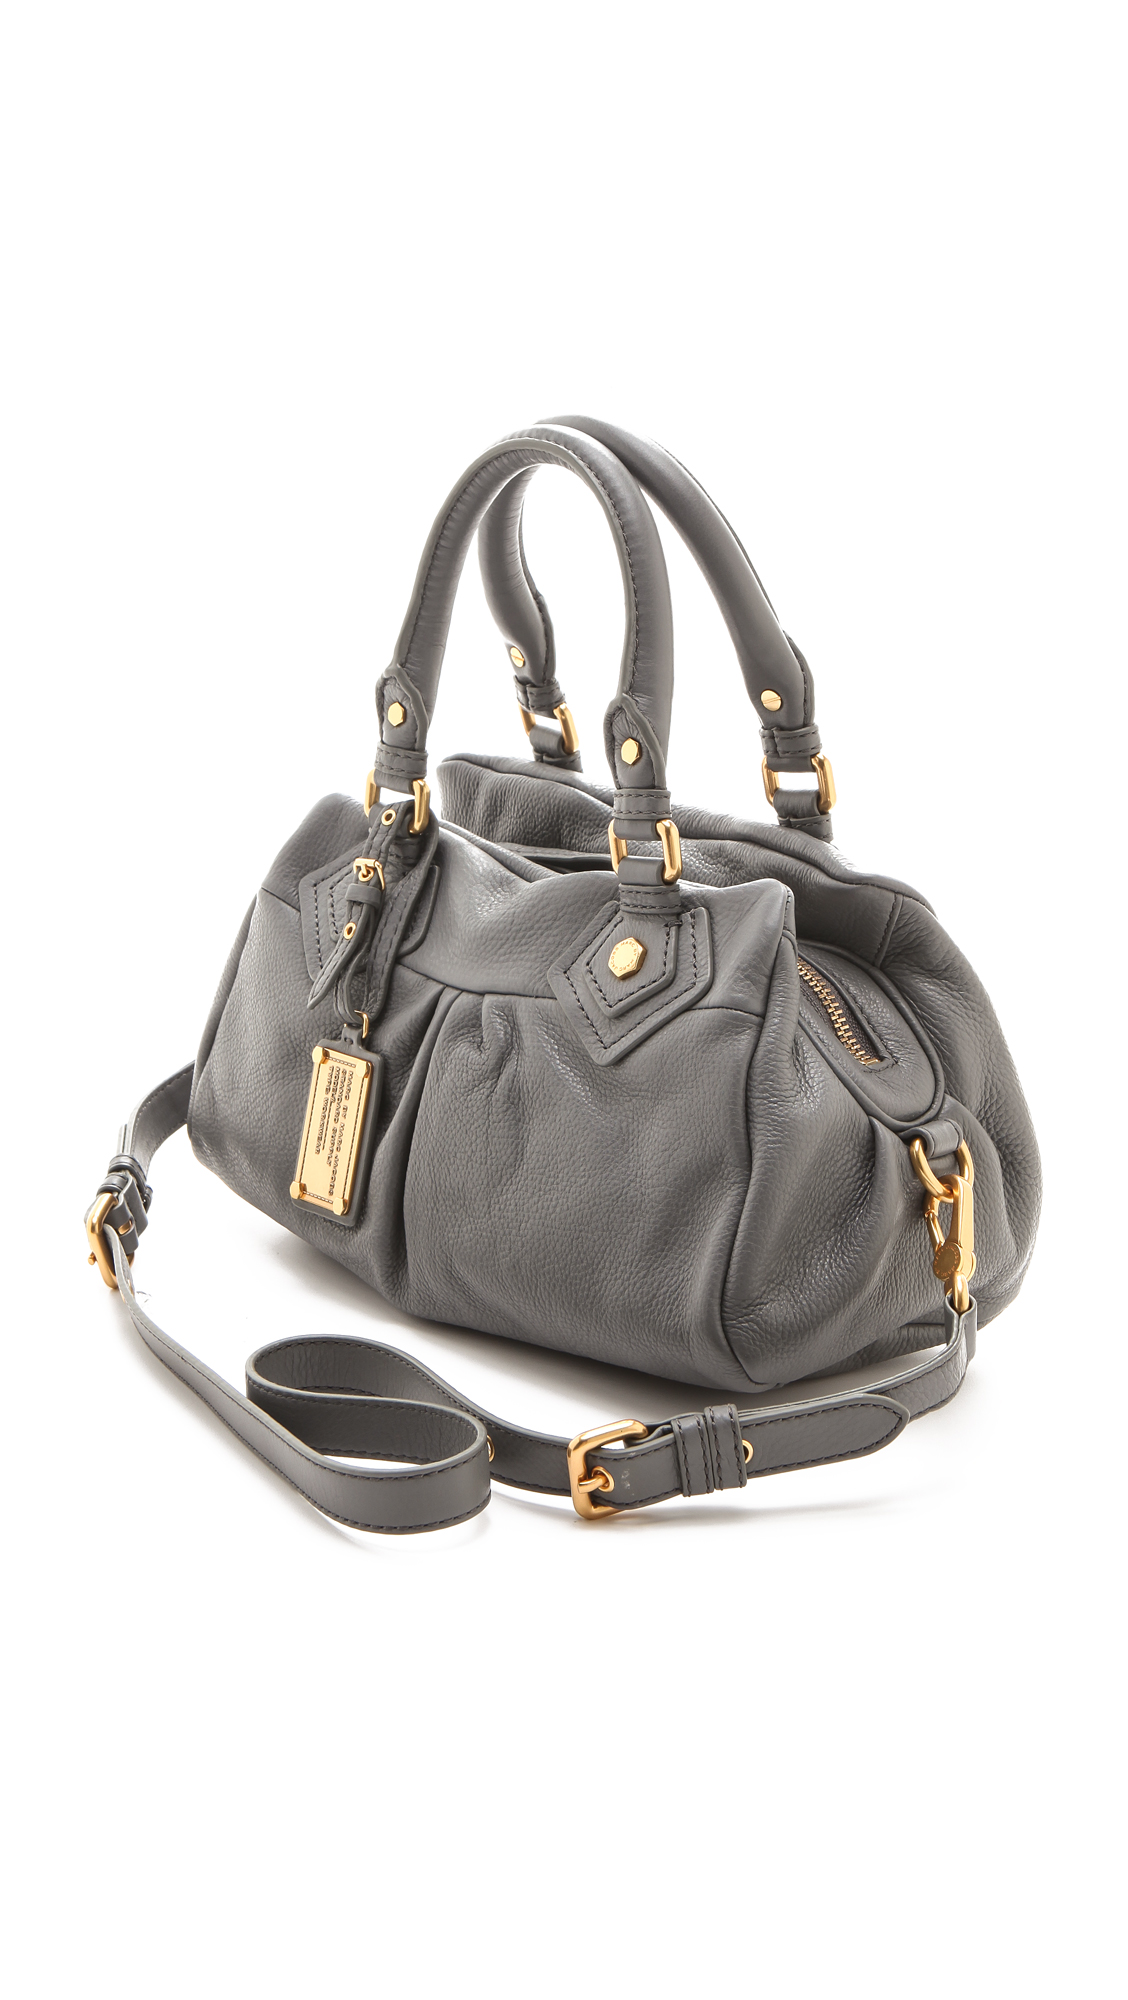 372f58dde2a5 Marc by Marc Jacobs Classic Q Baby Groovee Bag